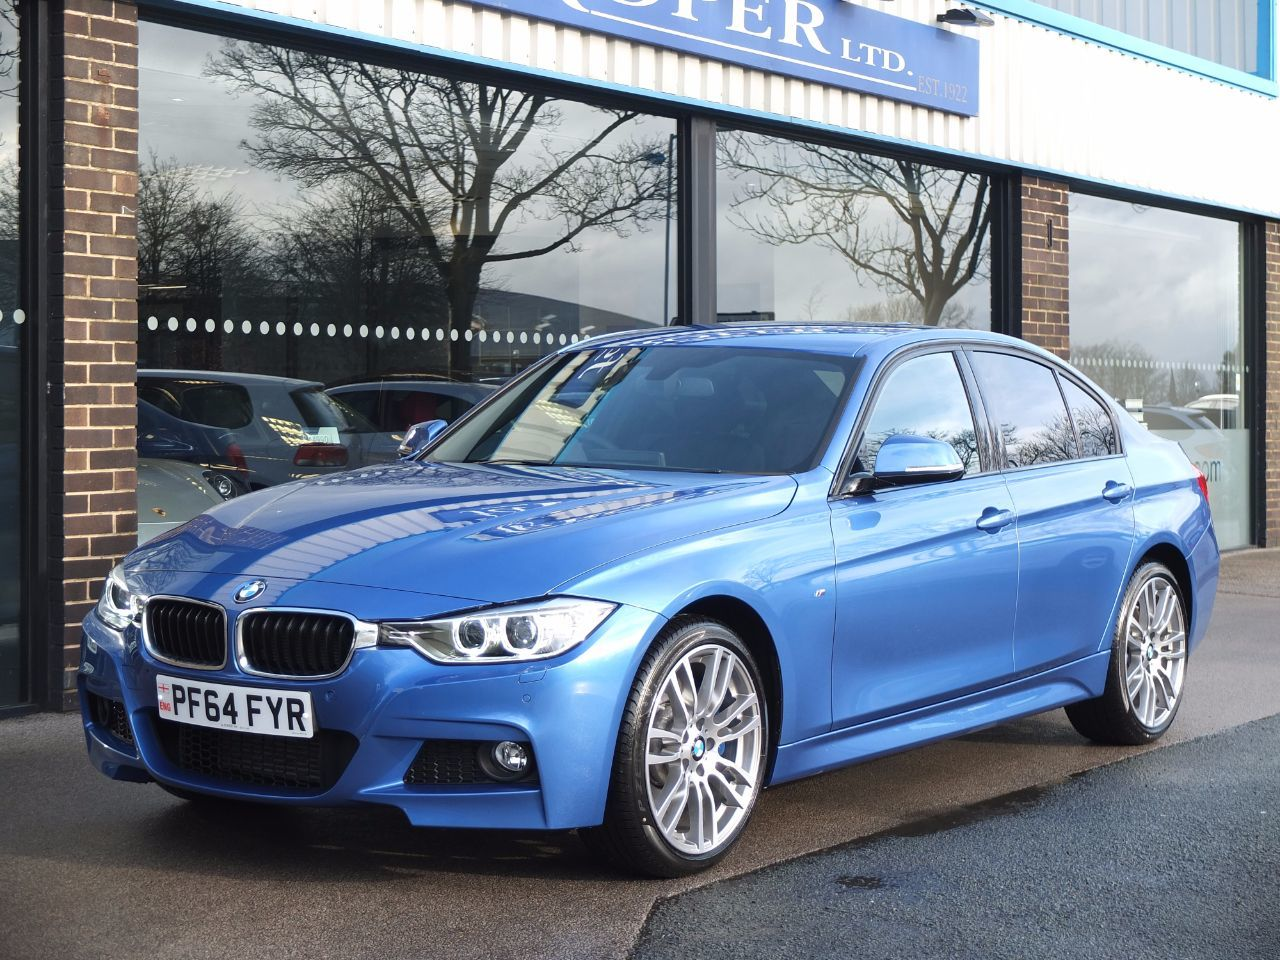 BMW 3 Series 3.0 330d xDrive M Sport Auto, Pro Media +++Spec Saloon Diesel Estoril Blue MetallicBMW 3 Series 3.0 330d xDrive M Sport Auto, Pro Media +++Spec Saloon Diesel Estoril Blue Metallic at fa Roper Ltd Bradford